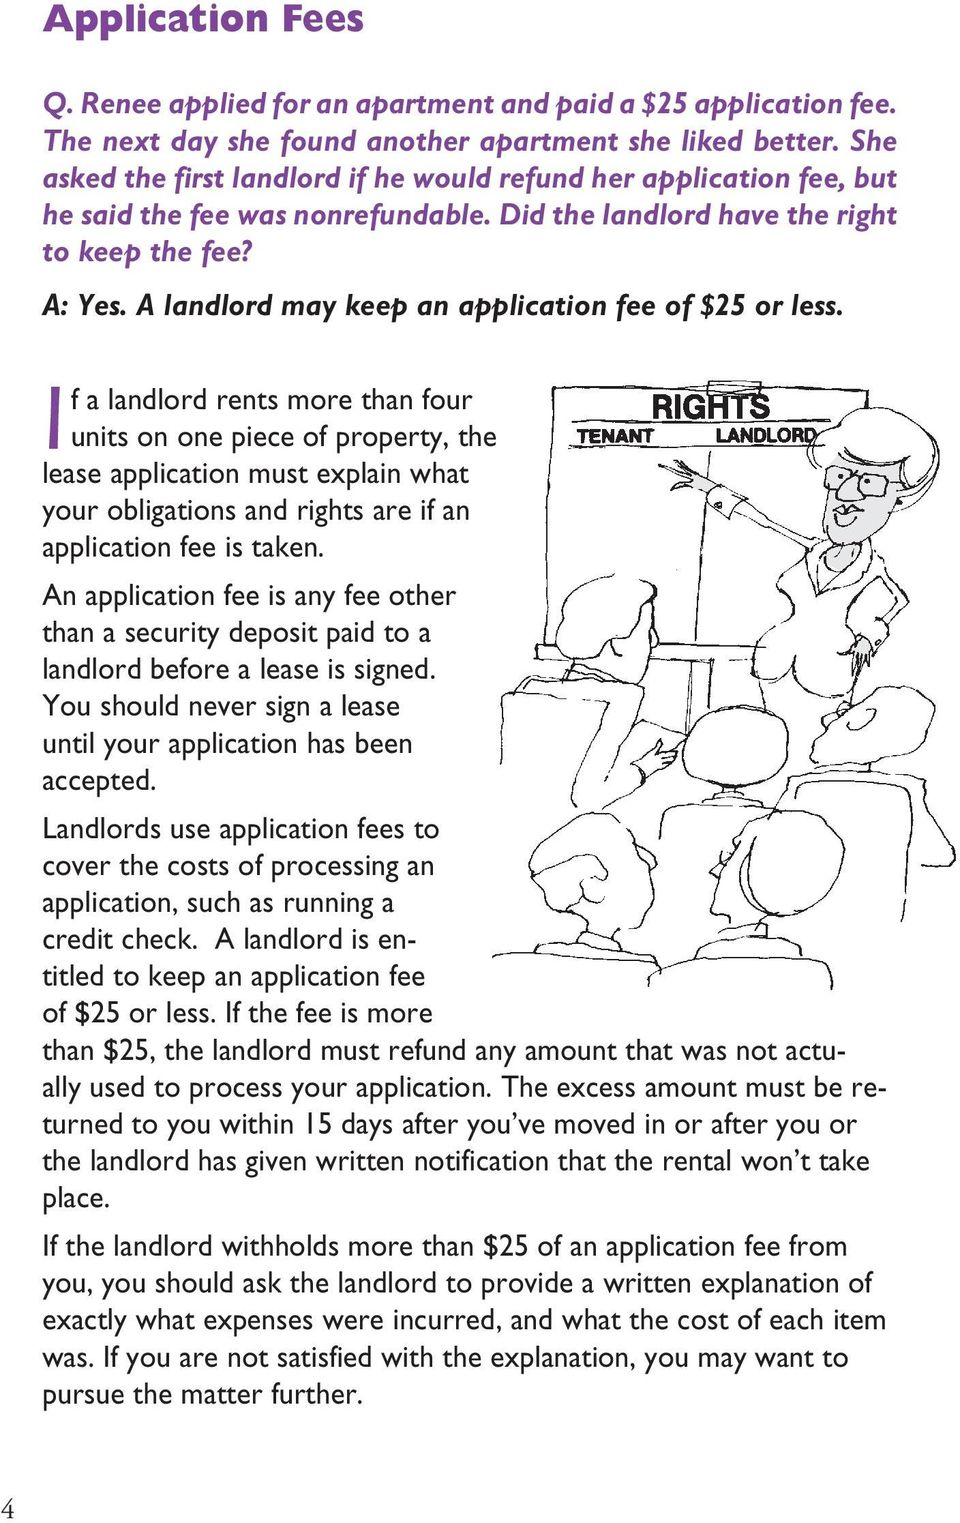 A landlord may keep an application fee of $25 or less.